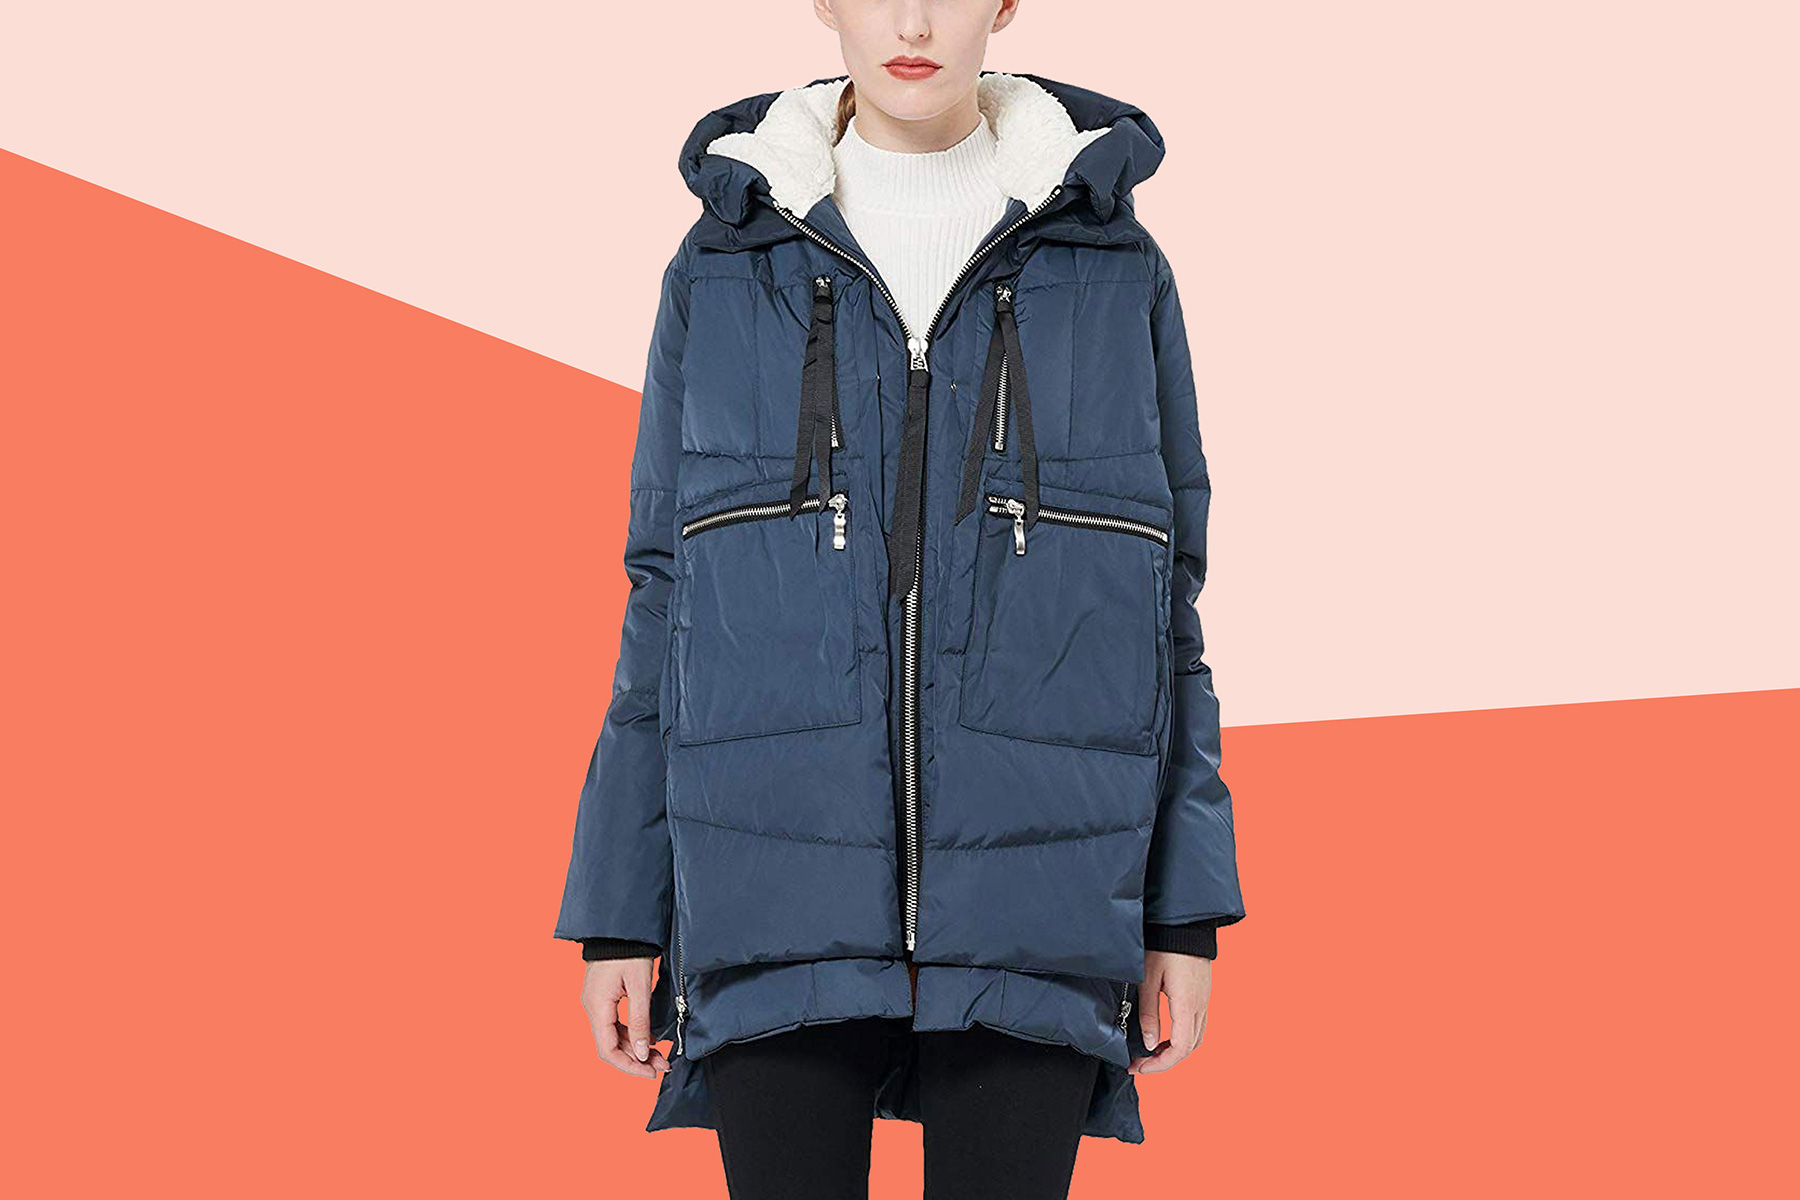 cb032e4b31b 5 Stylish Winter Coats to Keep You Warm and Cozy